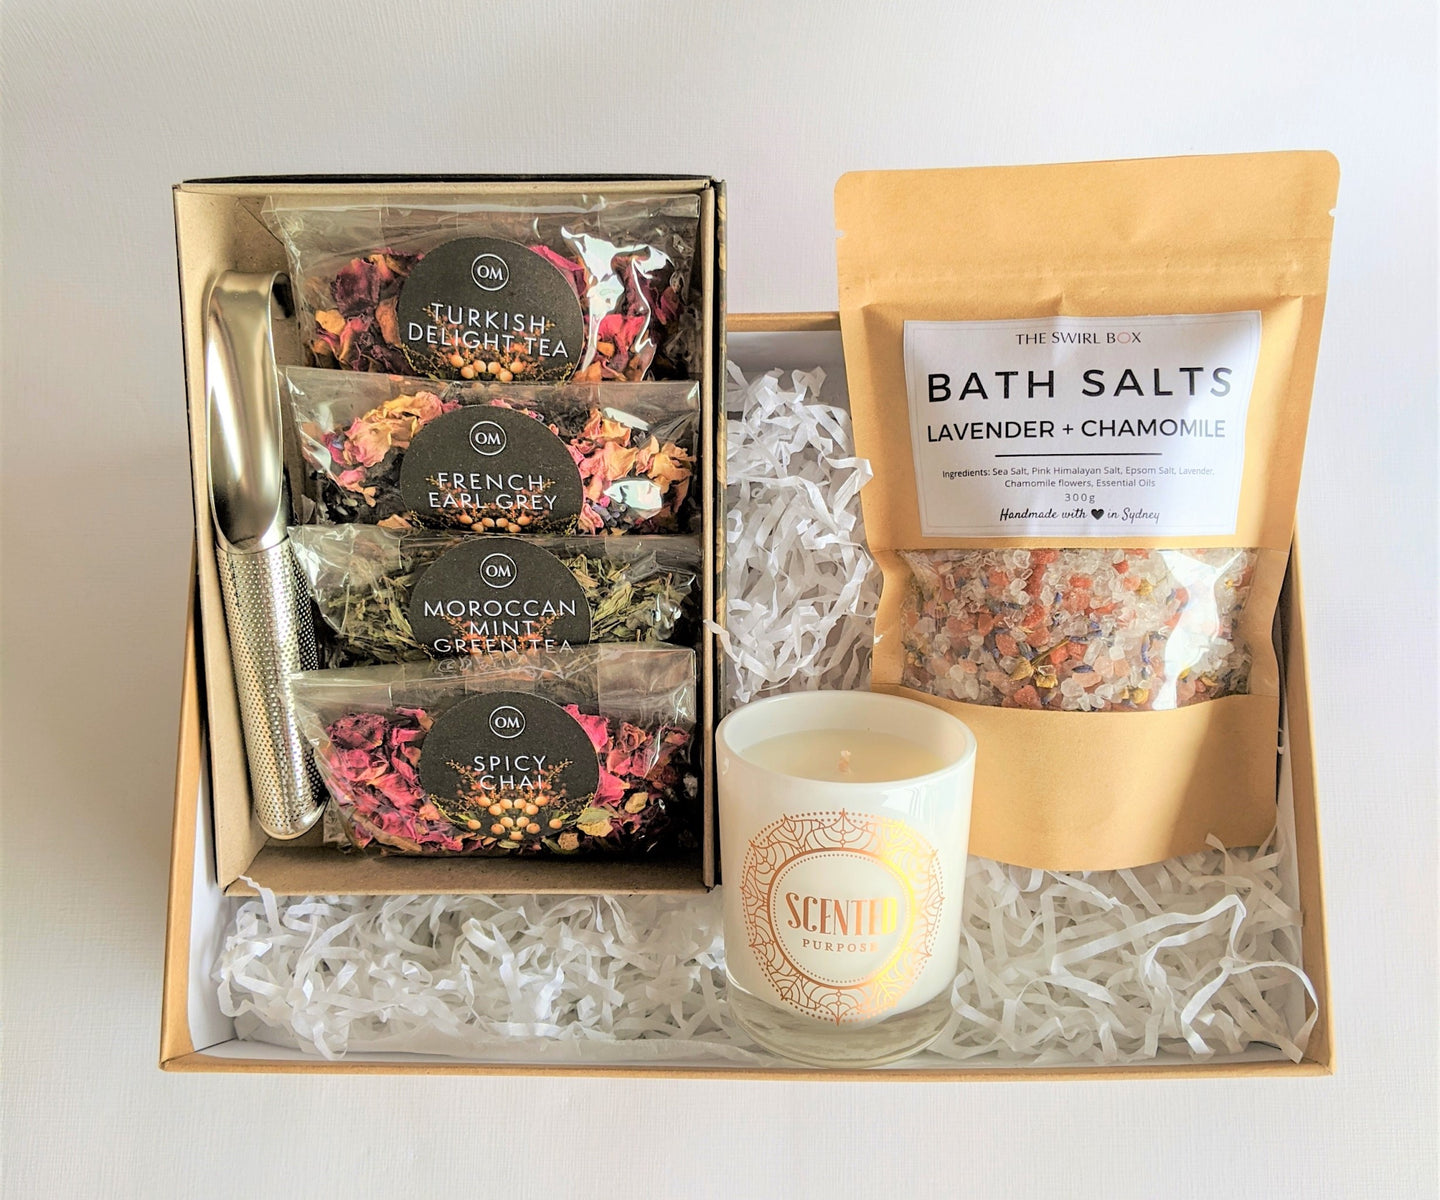 Swirl Box Spa Delight Gift Box for her with Tea Set, candle and bath salts with florals and essential oils